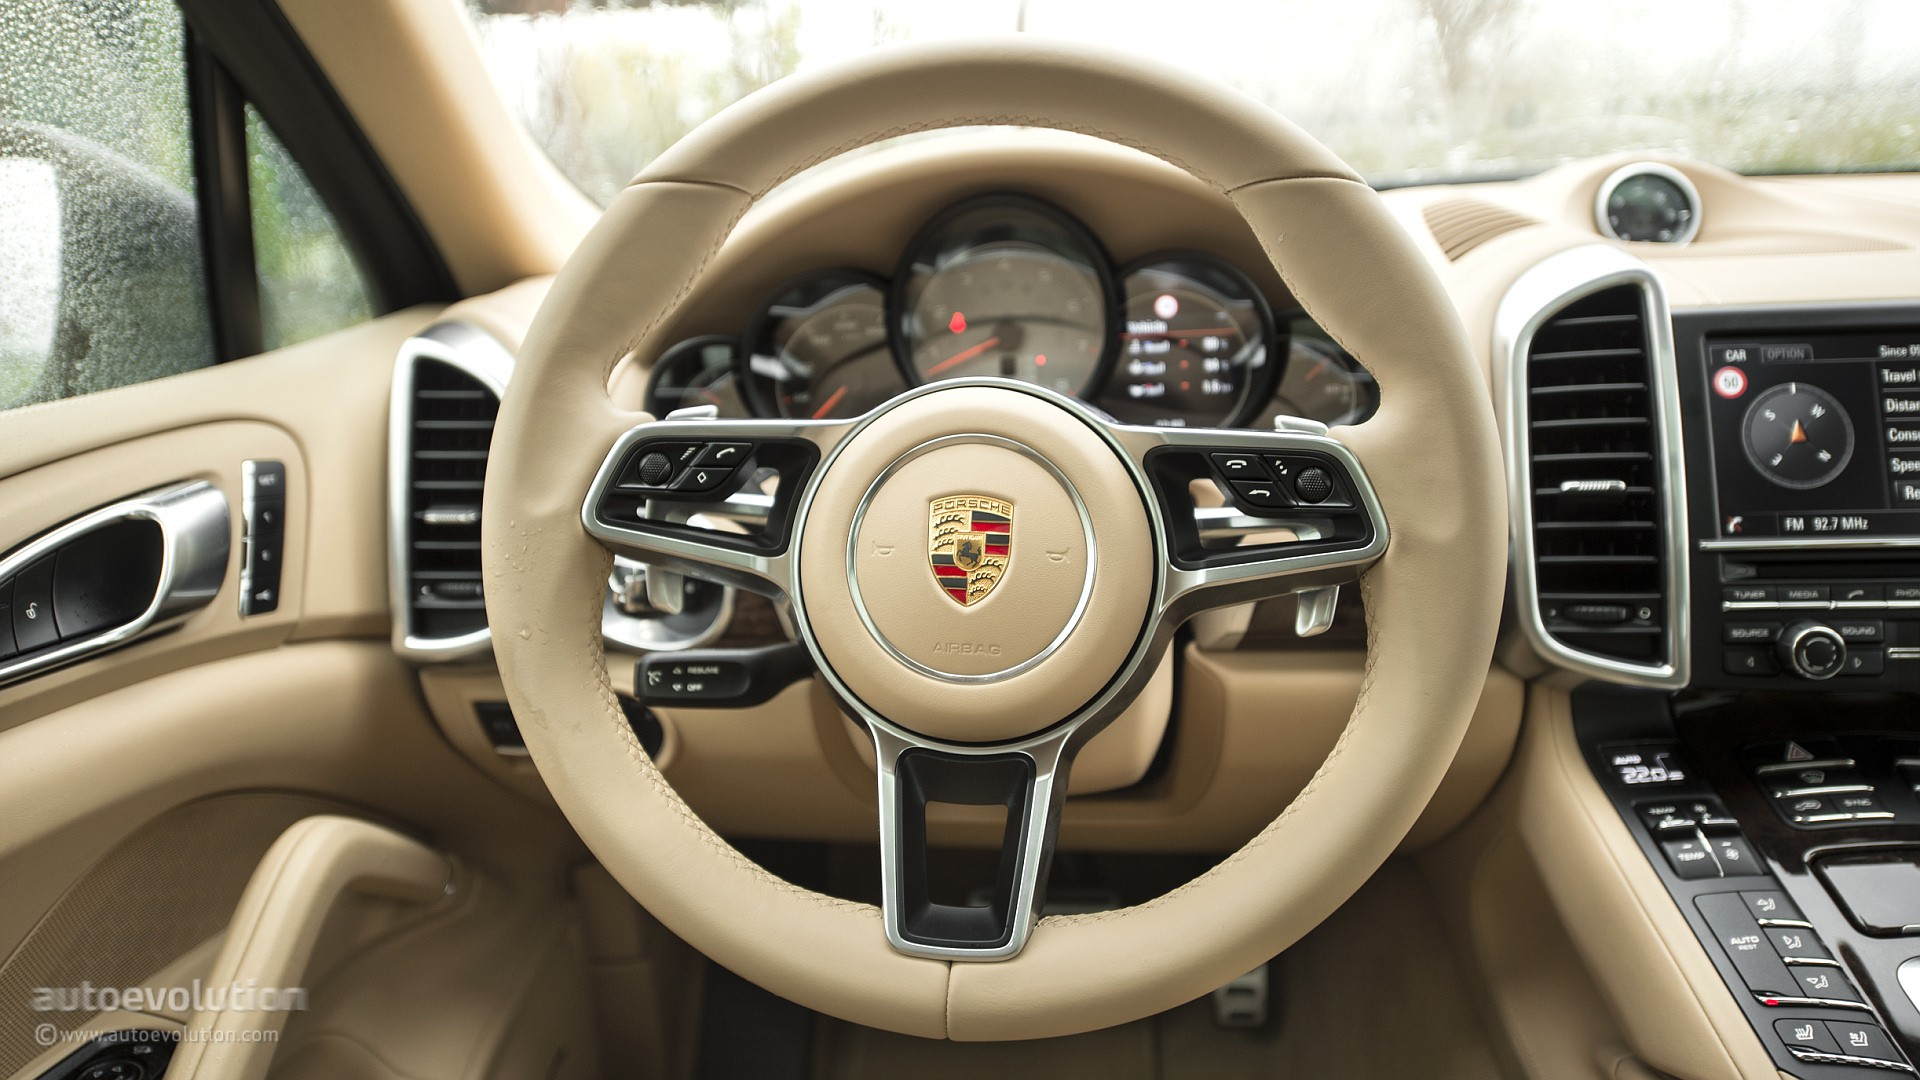 2015 Porsche Cayenne S Review - autoevolution